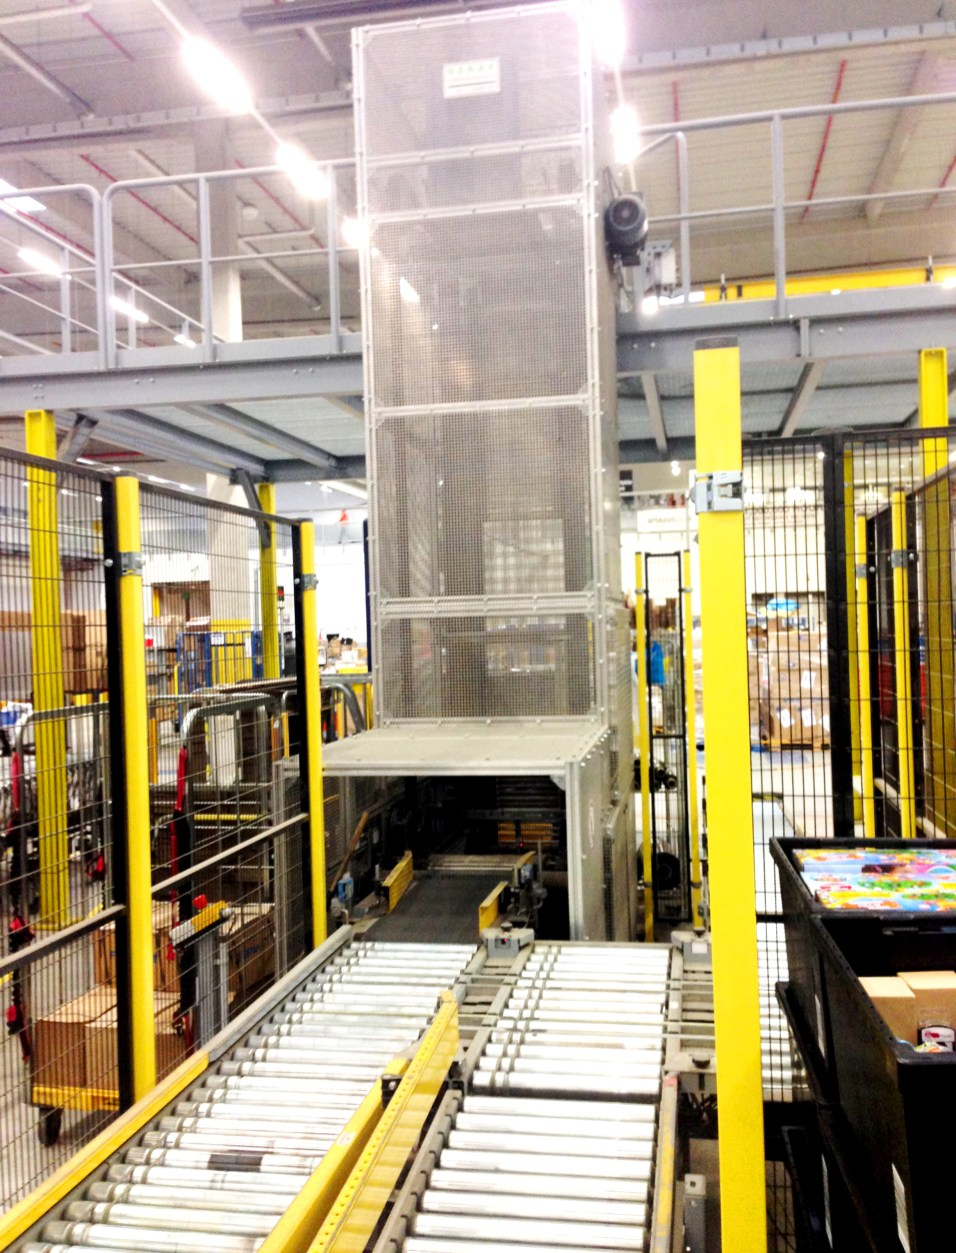 This Boxlifter moves packaged products from the First Floor to the ground floor